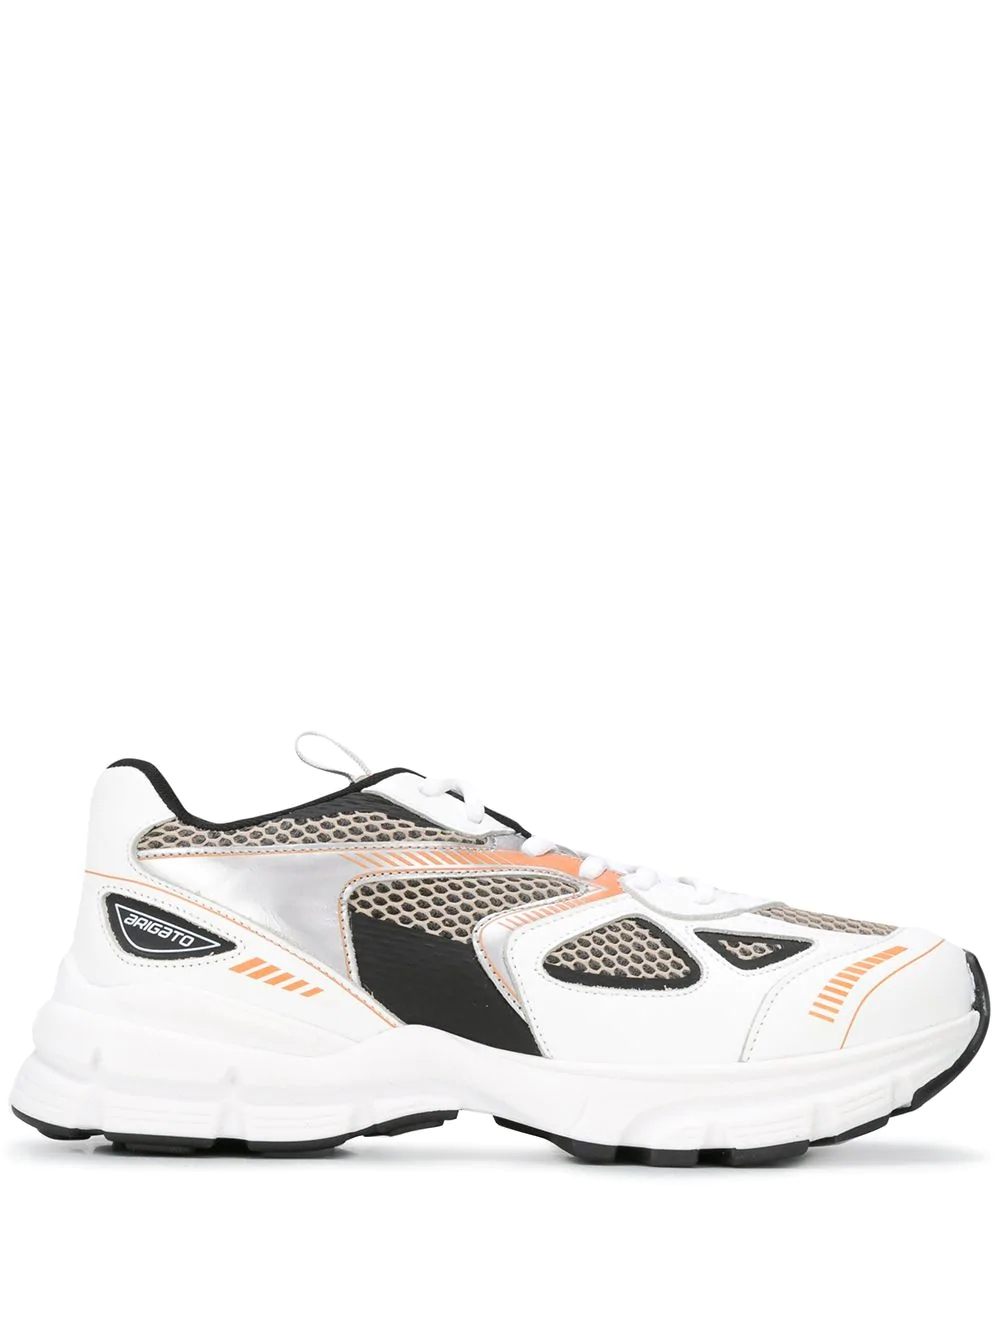 axel-arigato-marathon-runner-sneakers-orange-white